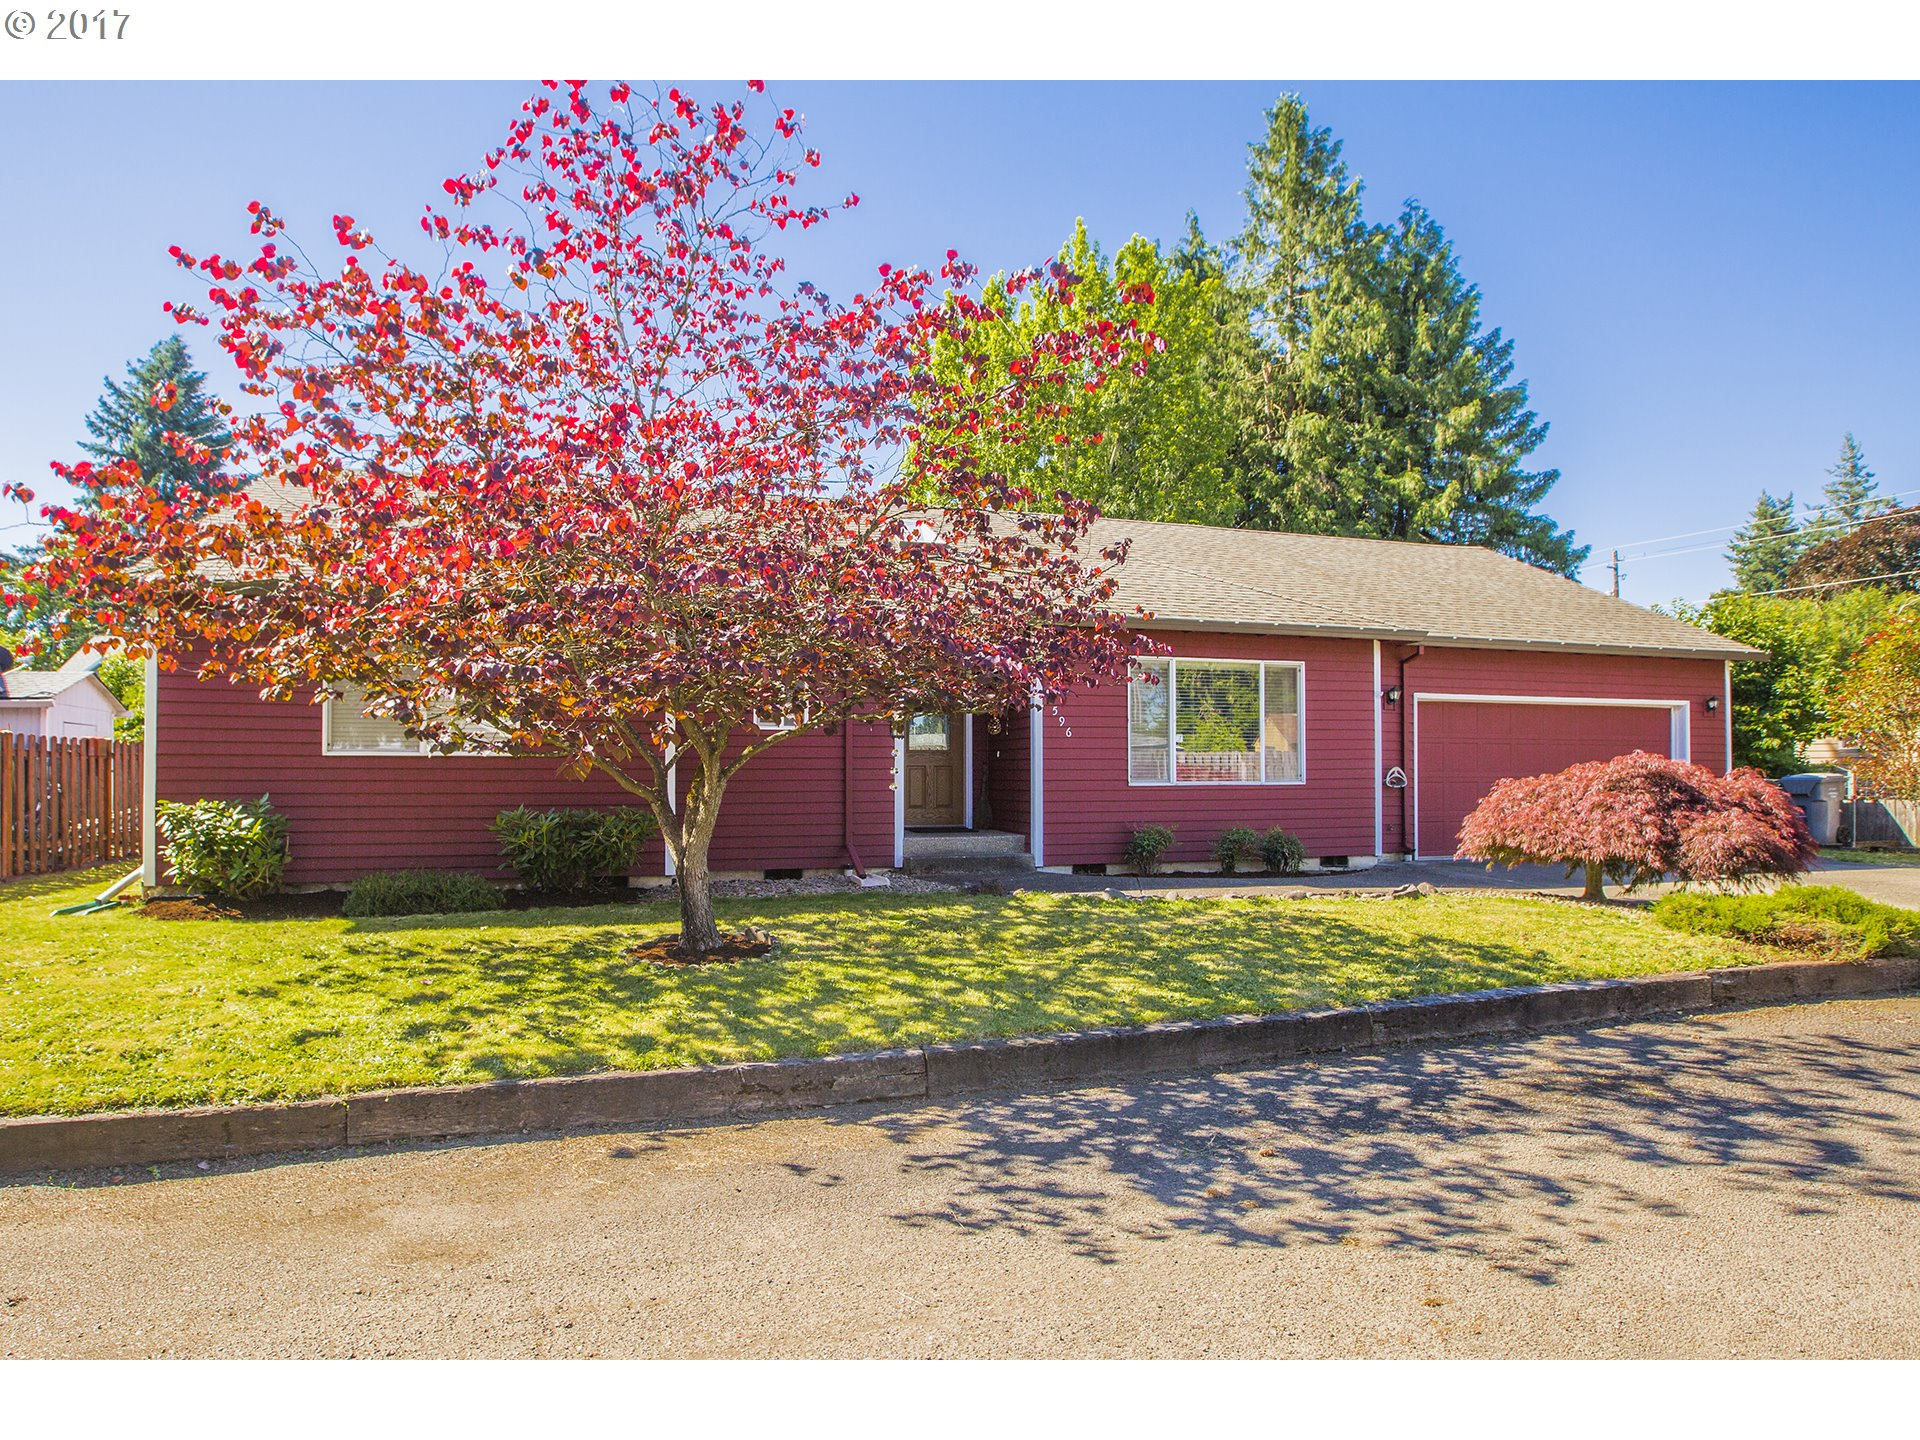 596 S IVY ST, Canby, OR 97013